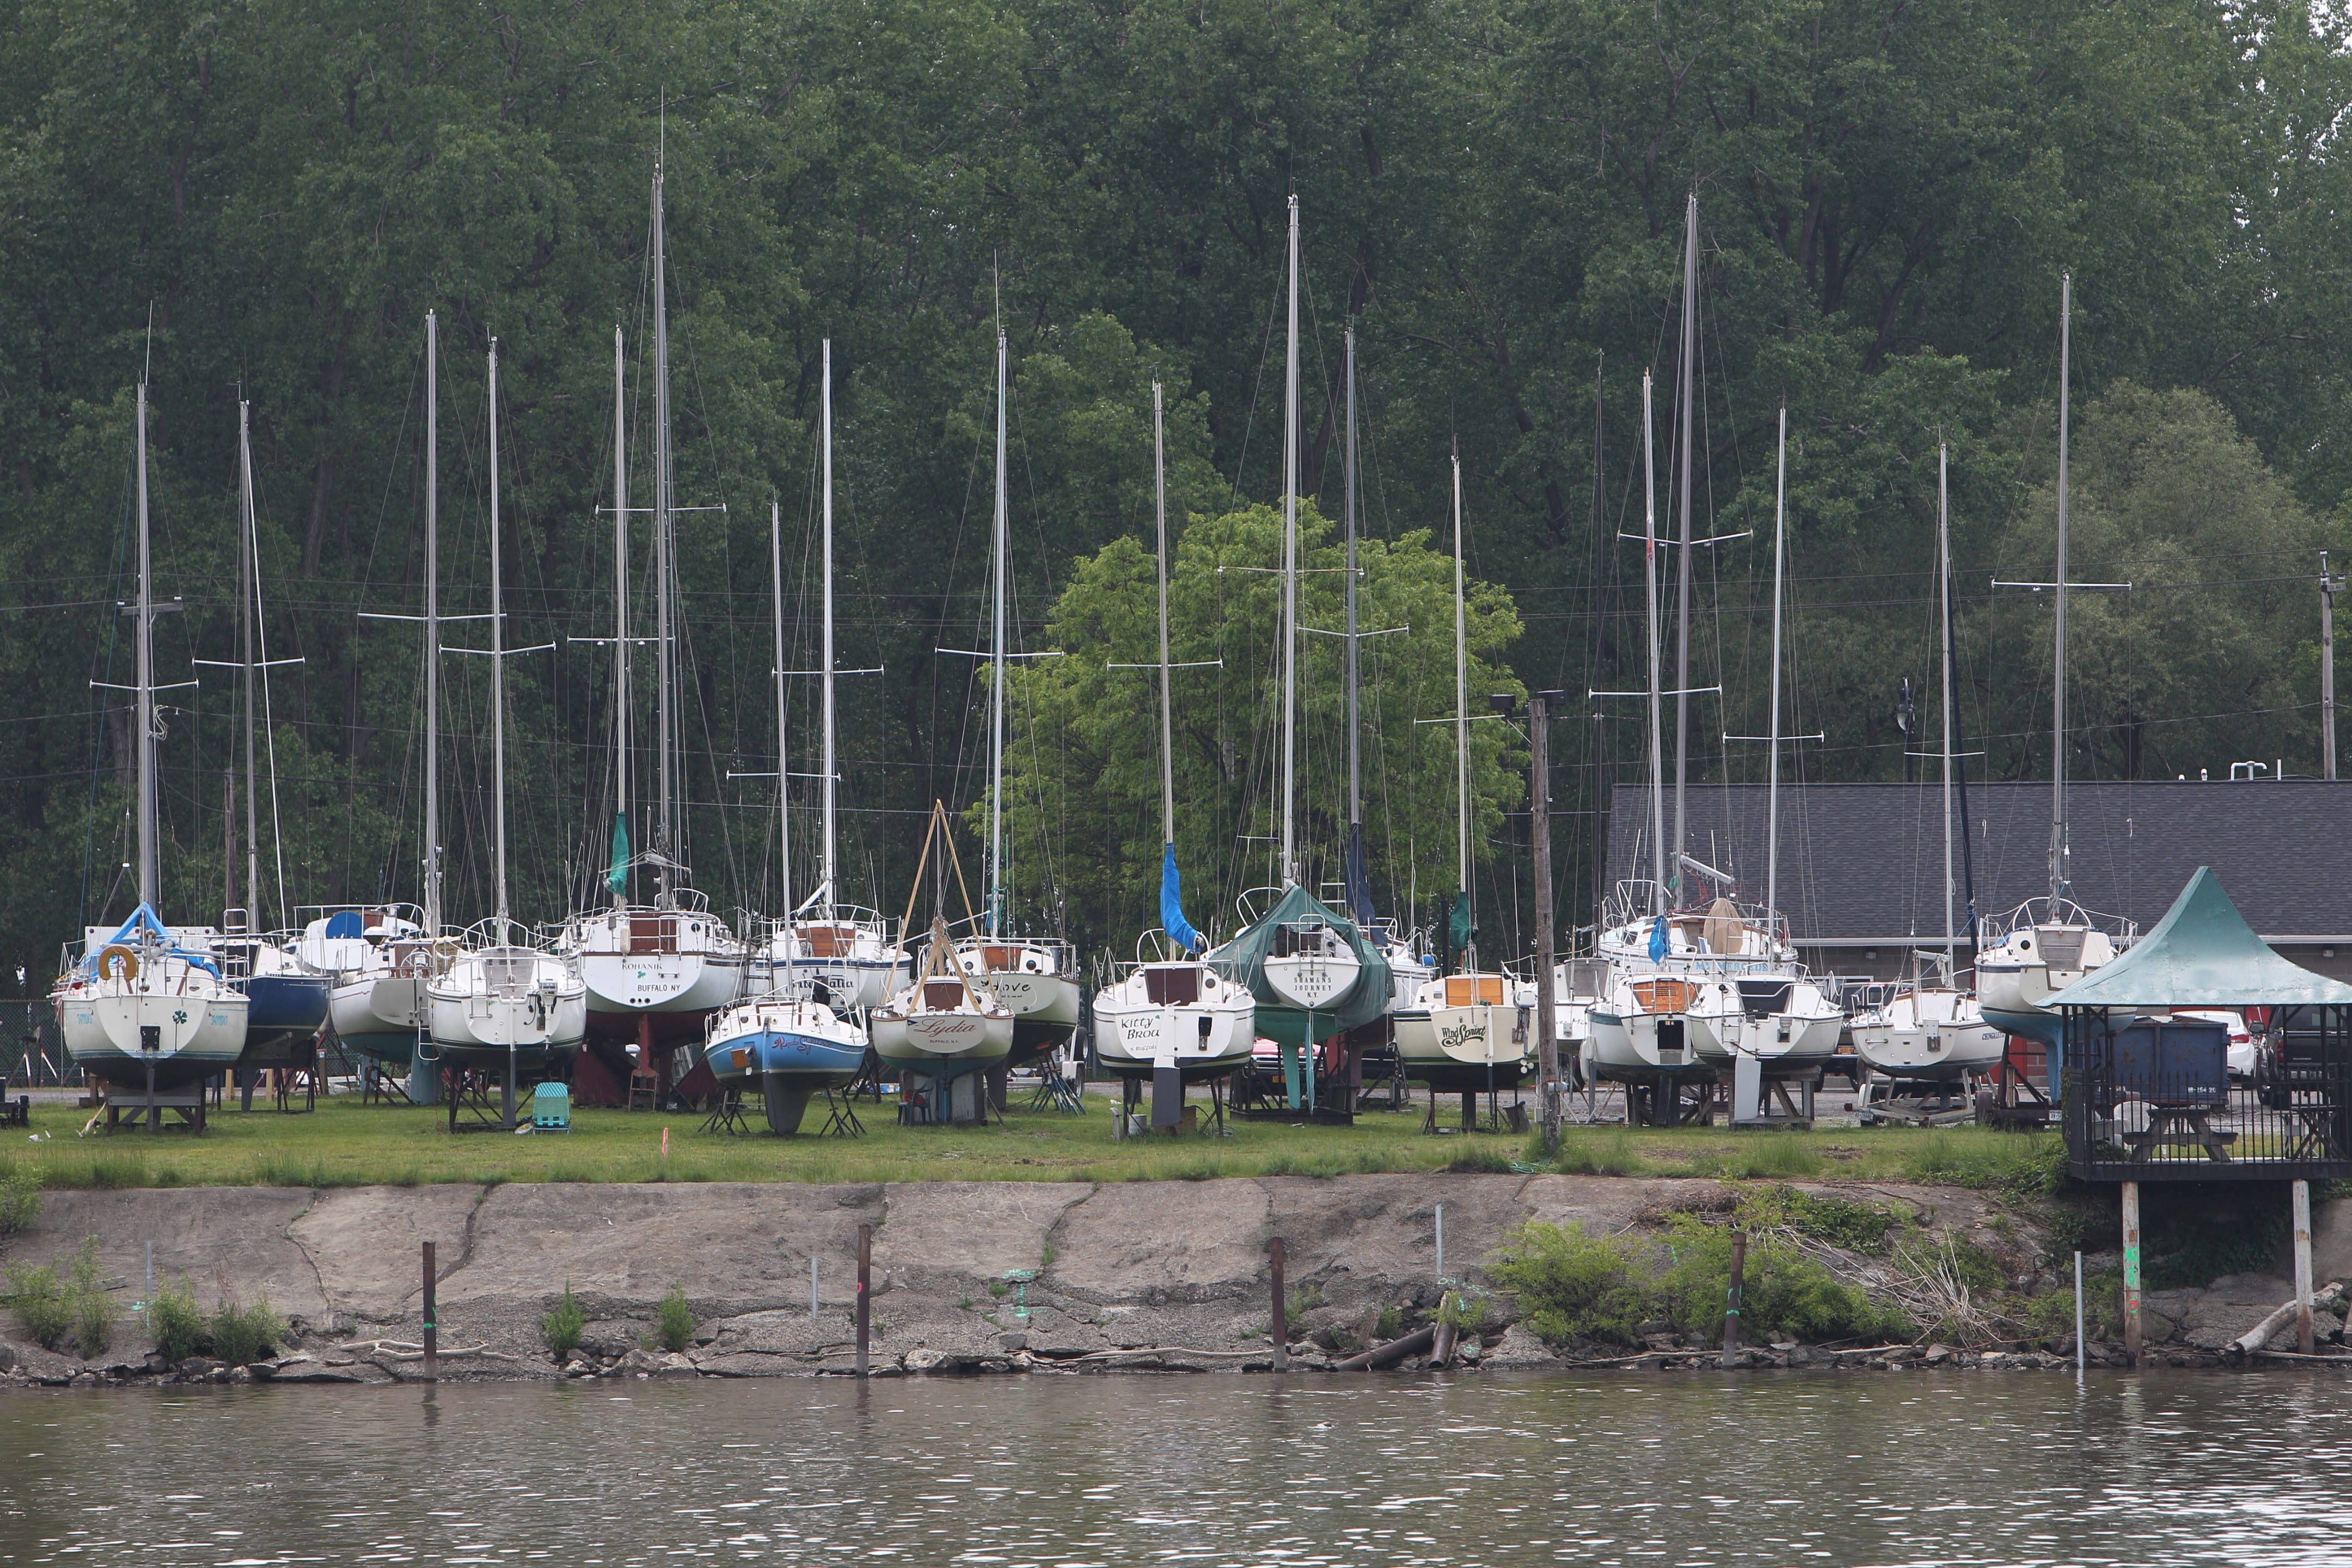 A project to replace docks at the First Buffalo River Marina has been delayed, keeping some anxious boaters from setting sail. The boaters had been told the makeover at the marina, which is owned by the New York Power Authority, would be completed by mid-May.